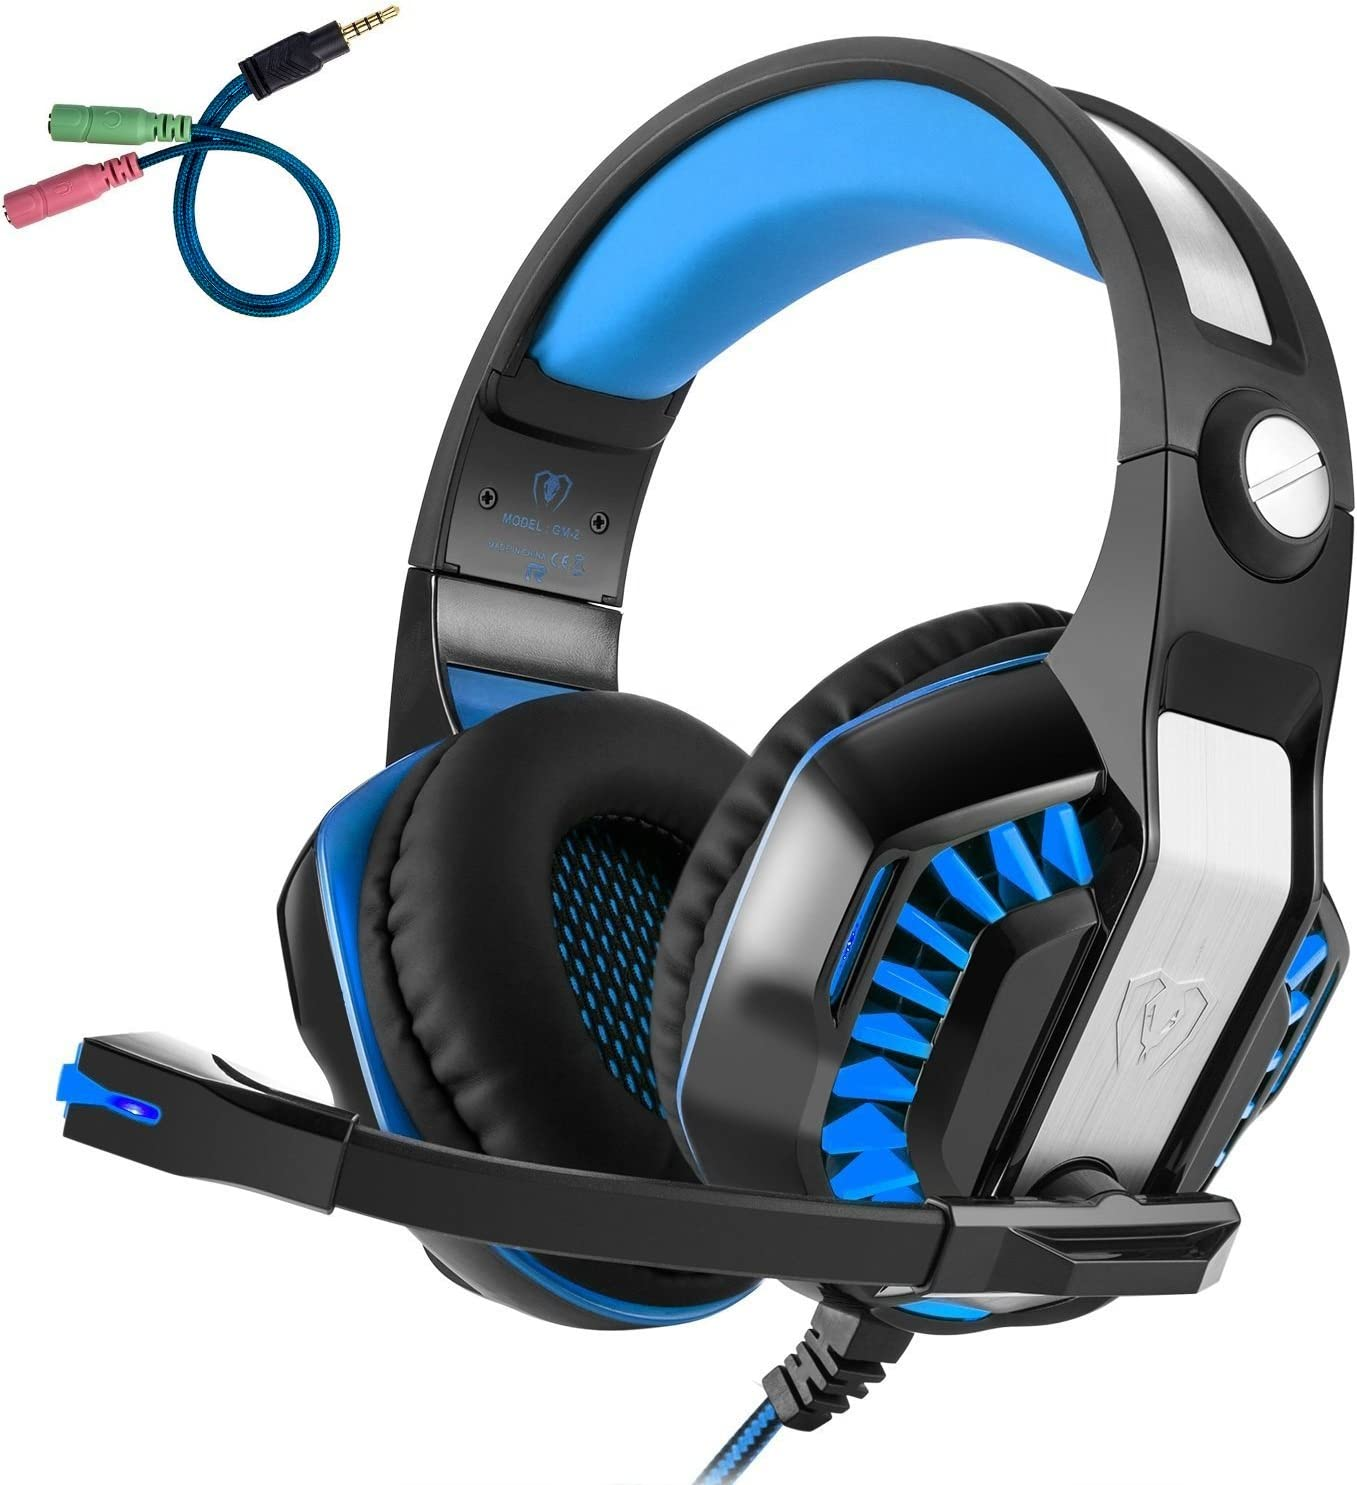 Beexcellent GM-2 Pro Gaming Over-Ear Headset with Mic, LED Lights and Volume Control Stereo Bass, Noise Cancelling, 3.5mm, for PS4 Xbox One, Laptop, PC, Tablet, Most Smartphones Blue